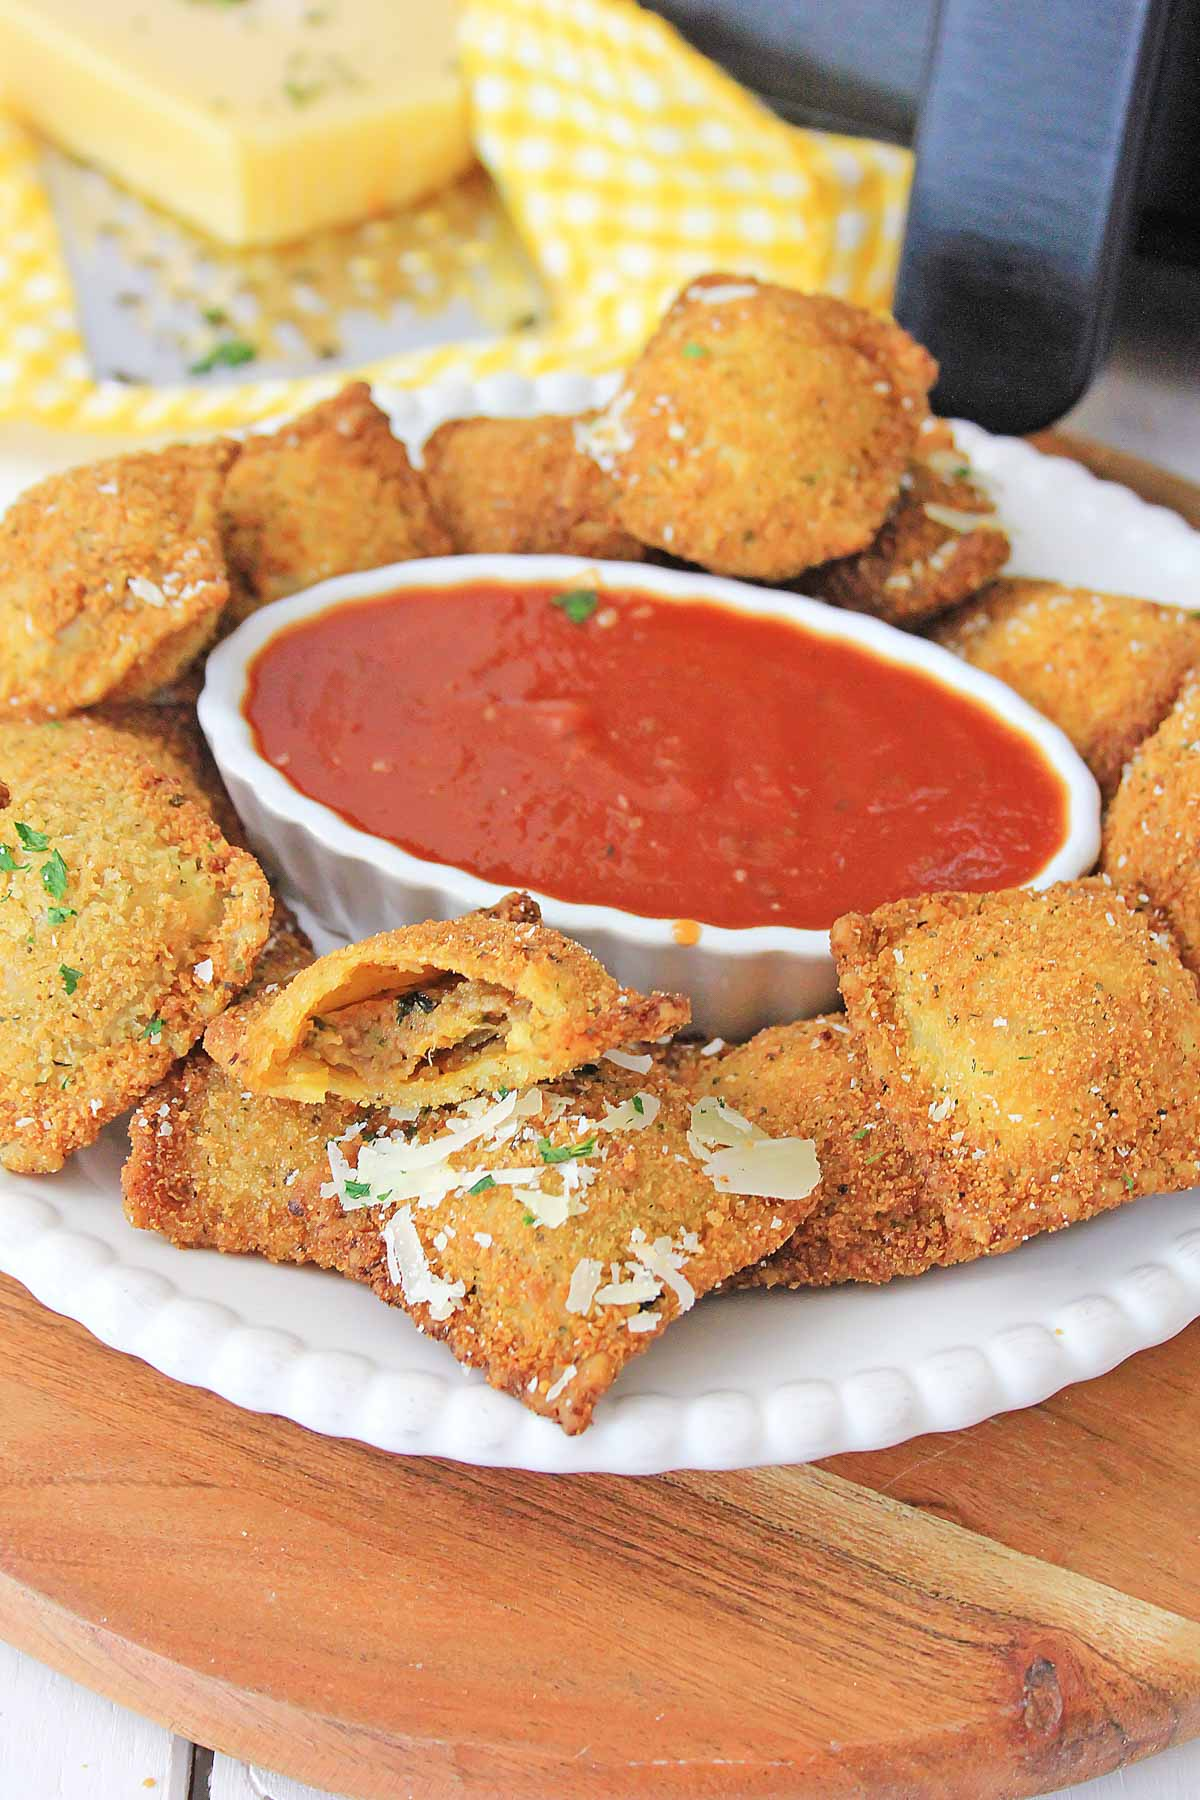 plate of air fried ravioli with a red sauce. The air fryer is in the background.